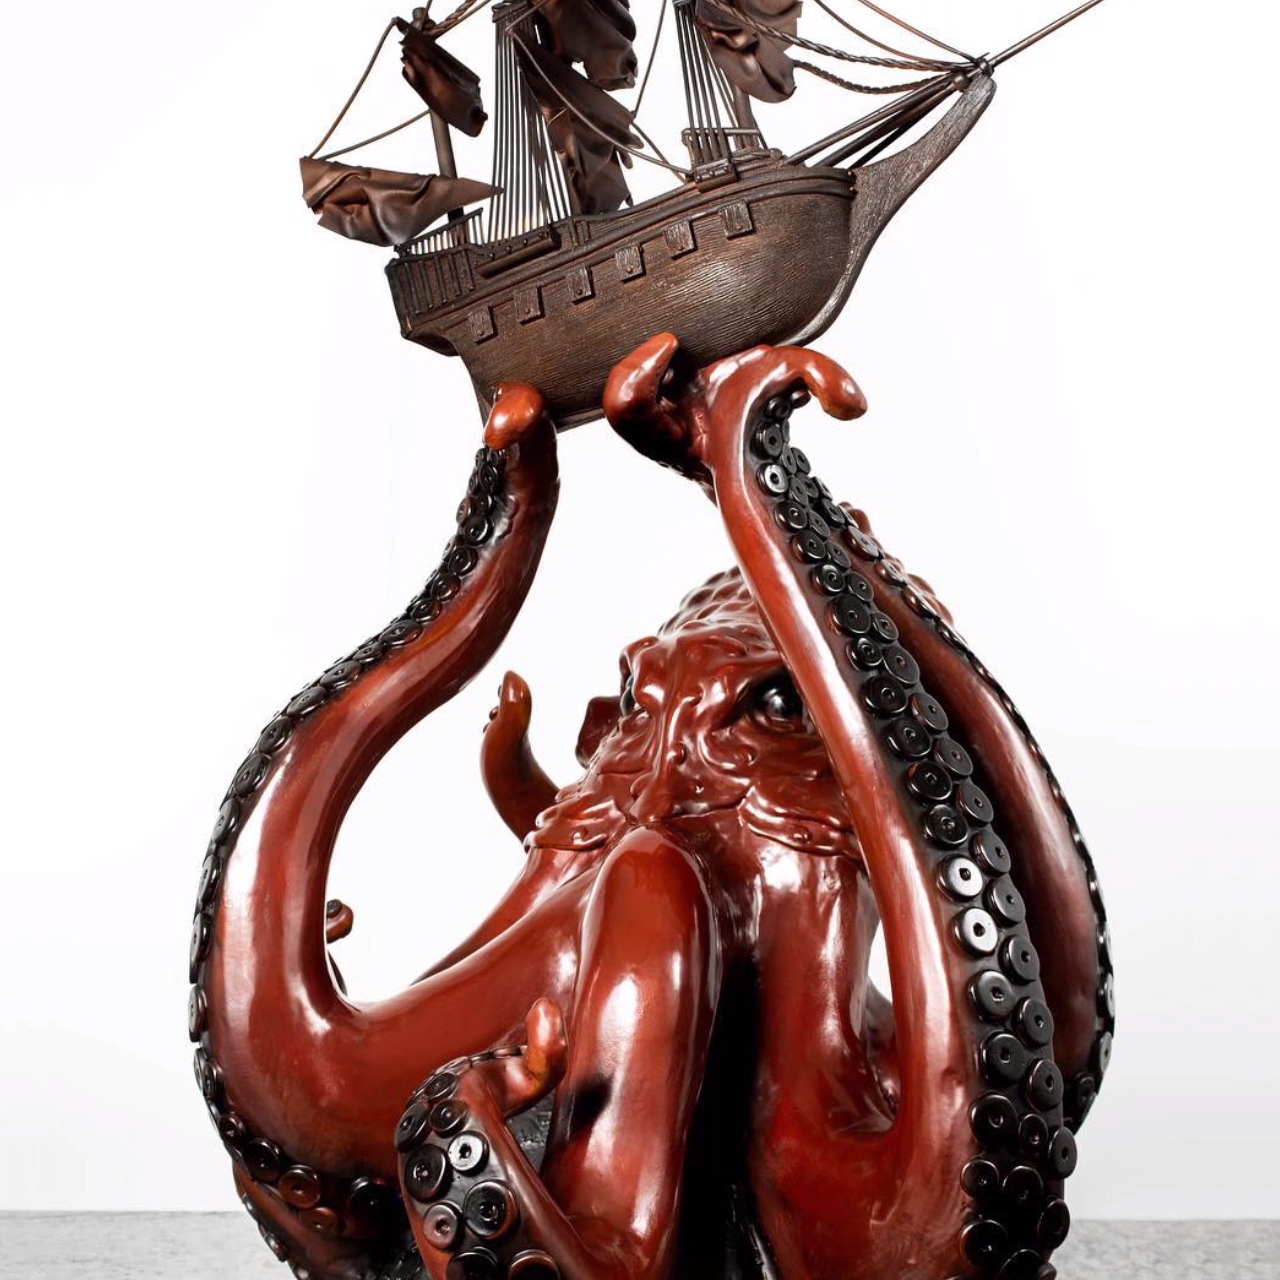 Photo of 140 lb Chocolate Kraken & Pirate Ship